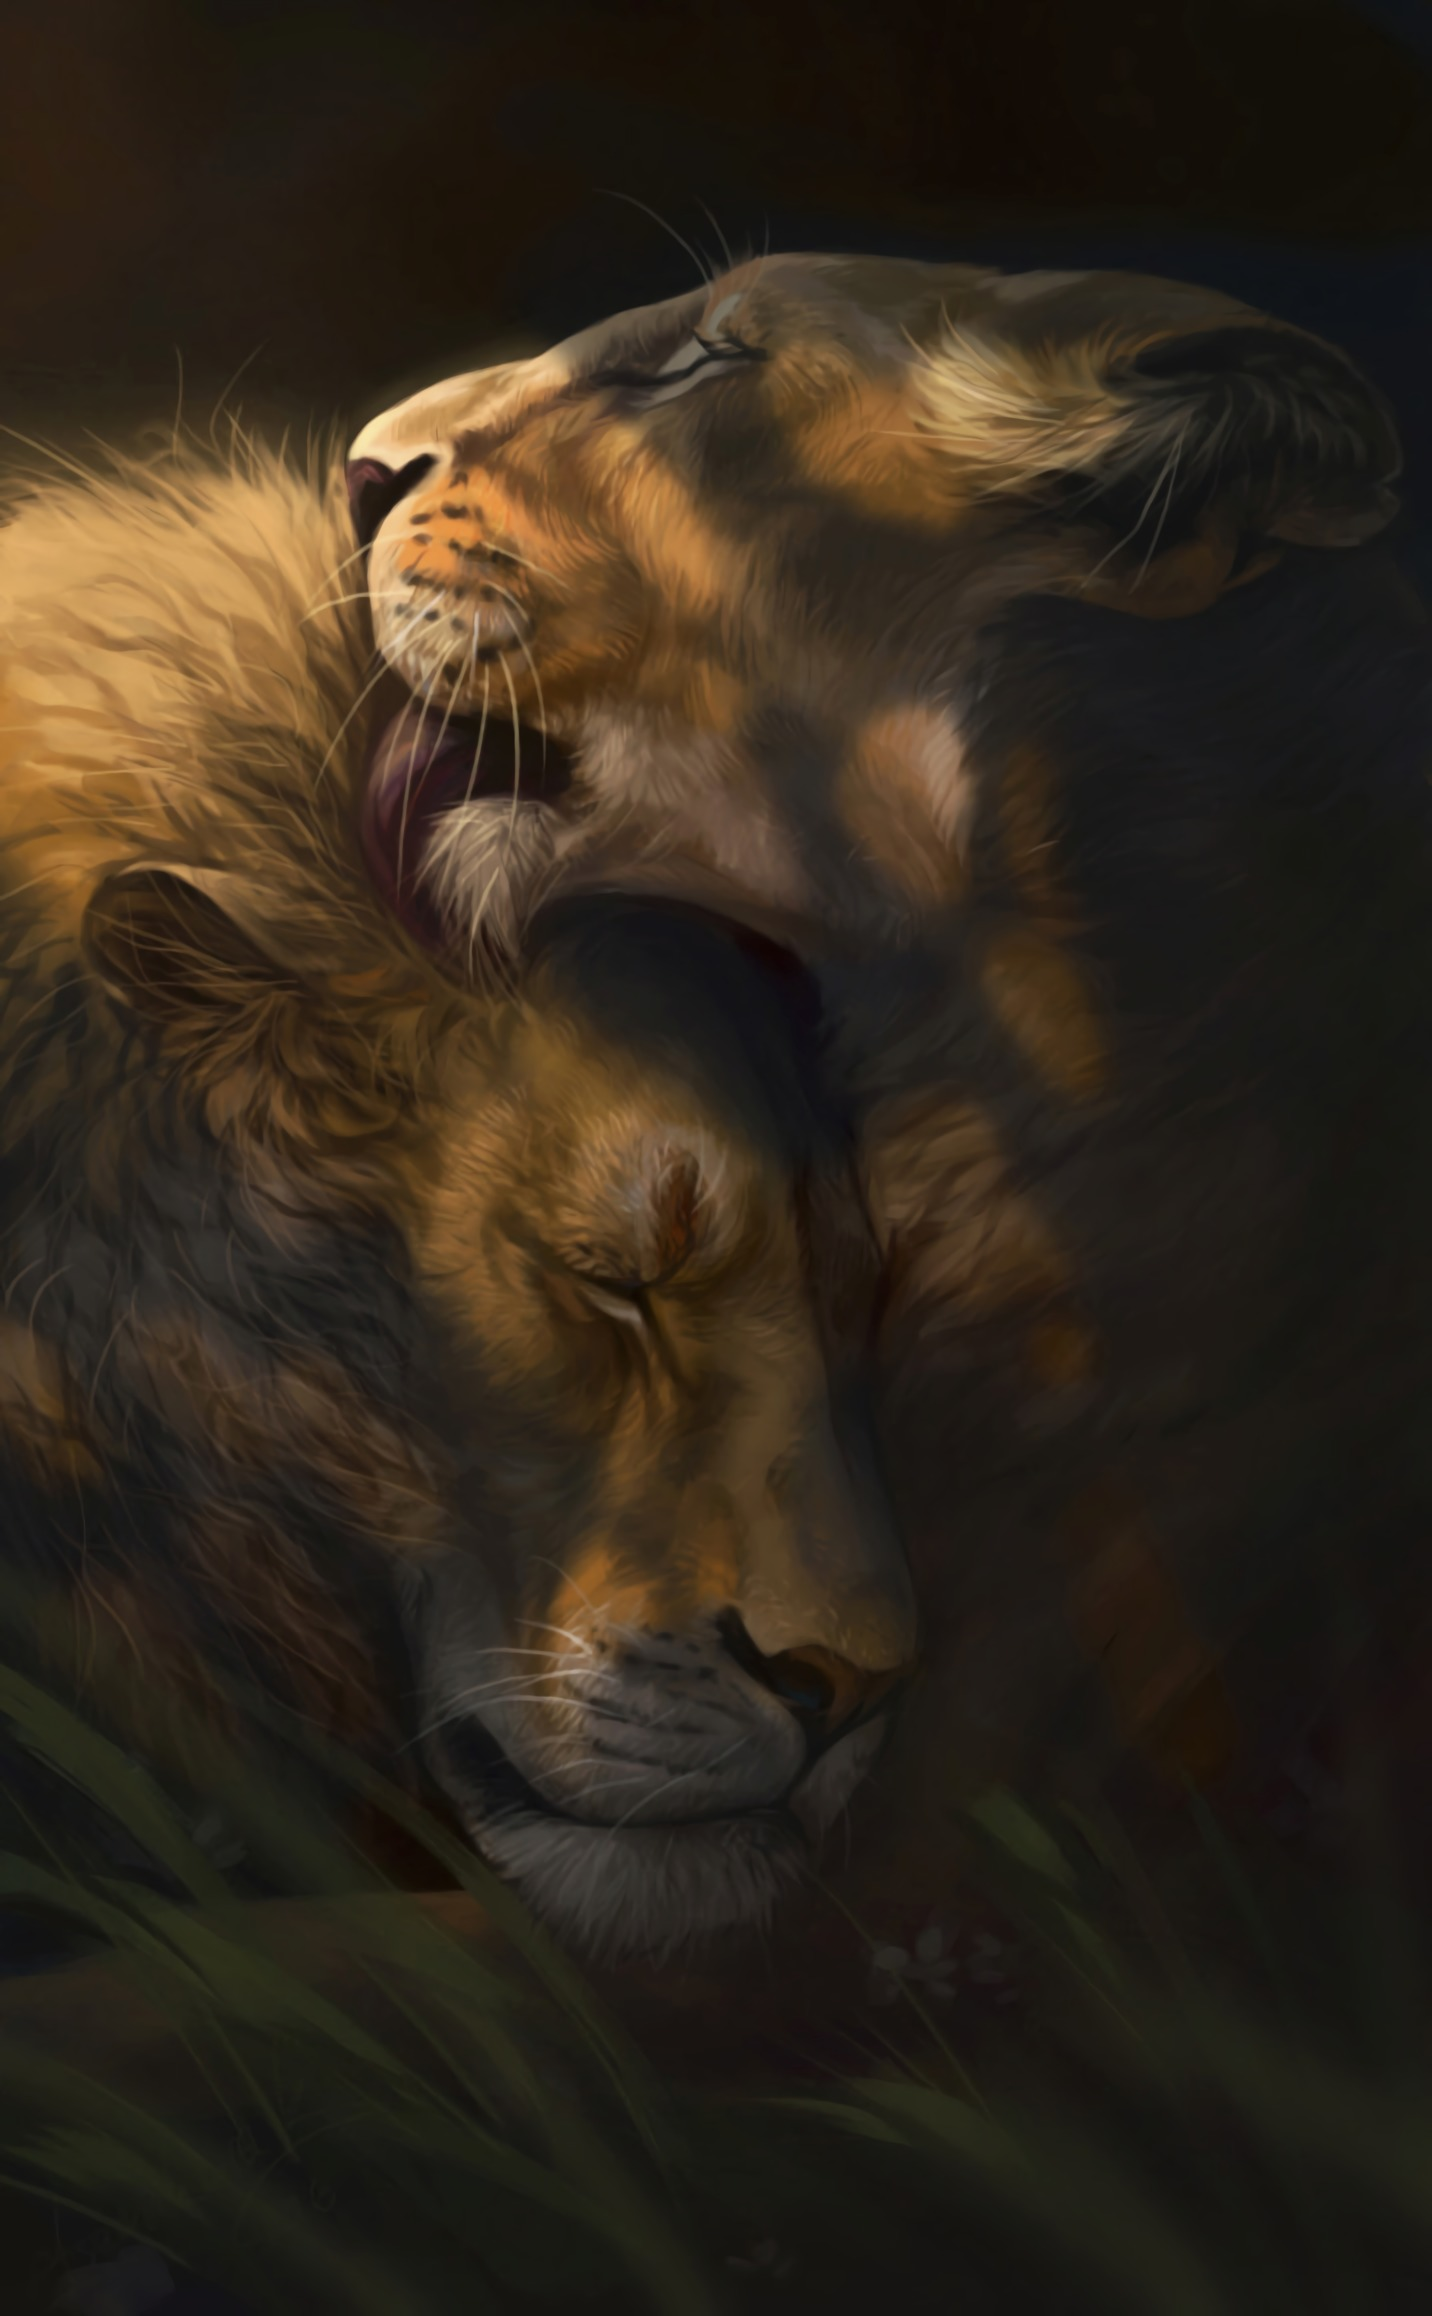 64338 download wallpaper Art, Lion, Lioness, Love, Nicely, Nice screensavers and pictures for free